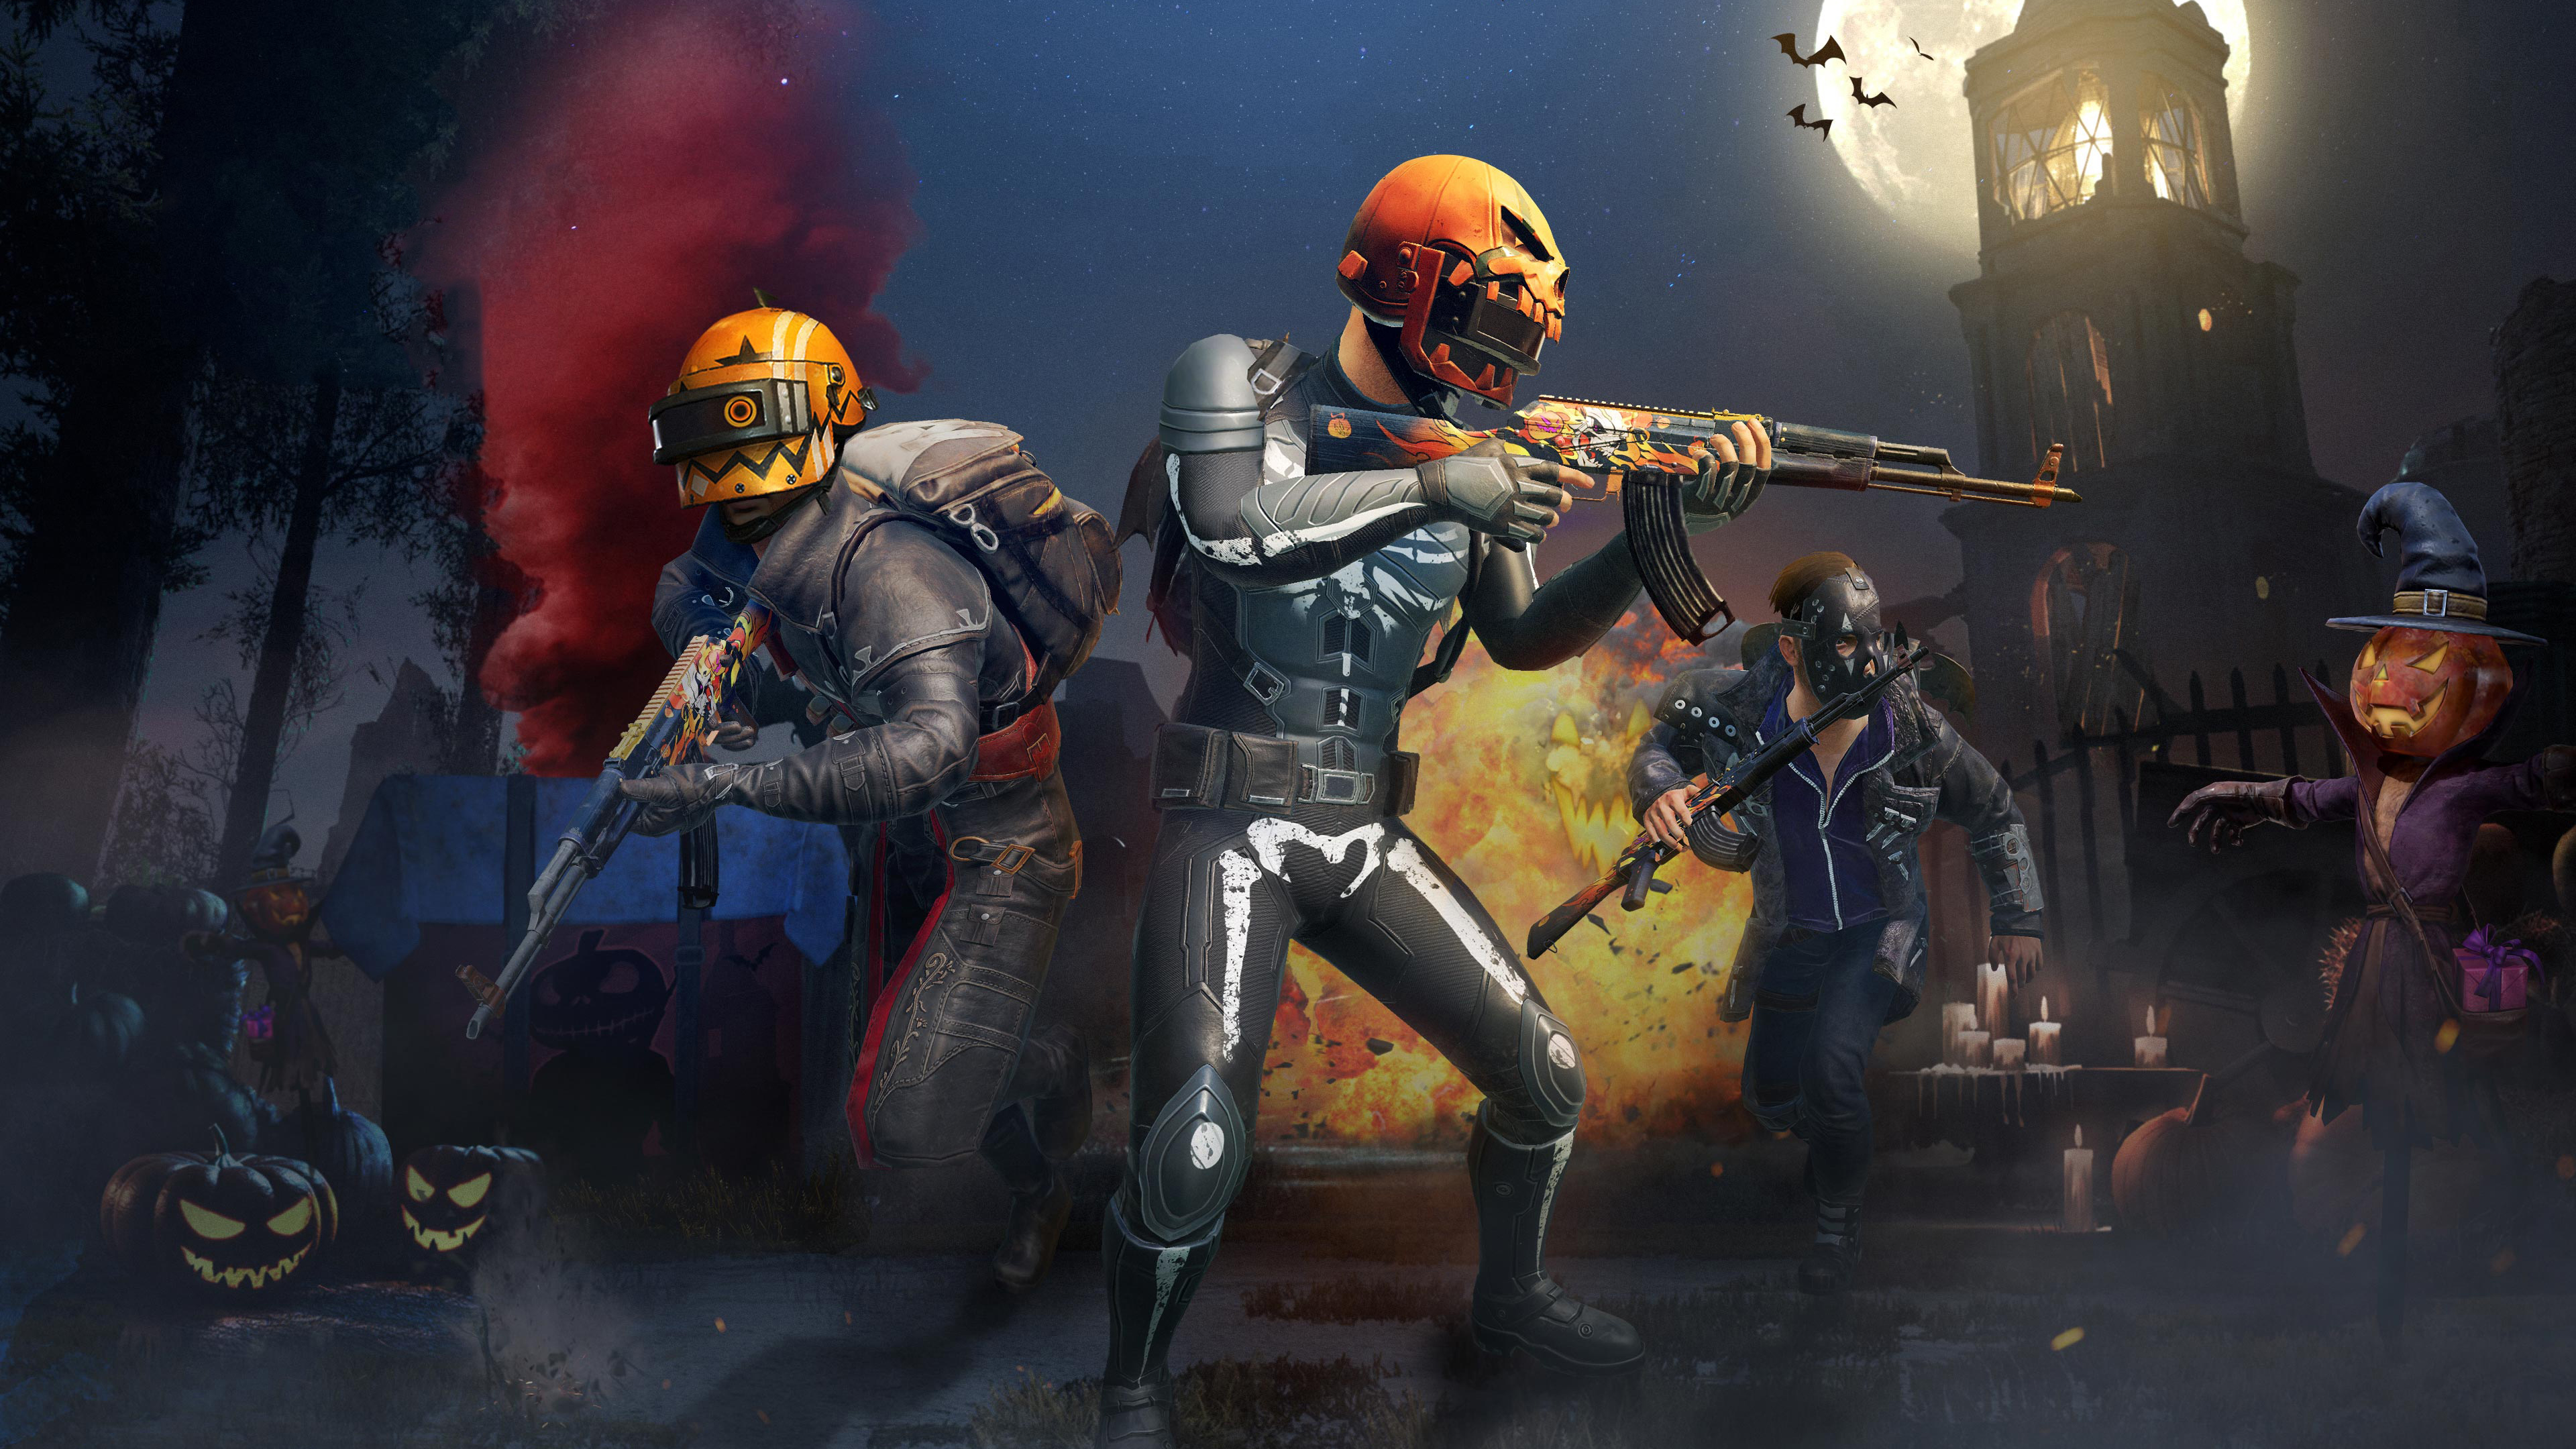 Pubg Hd Pics For Mobile: PUBG Mobile Halloween Update 4K Wallpapers